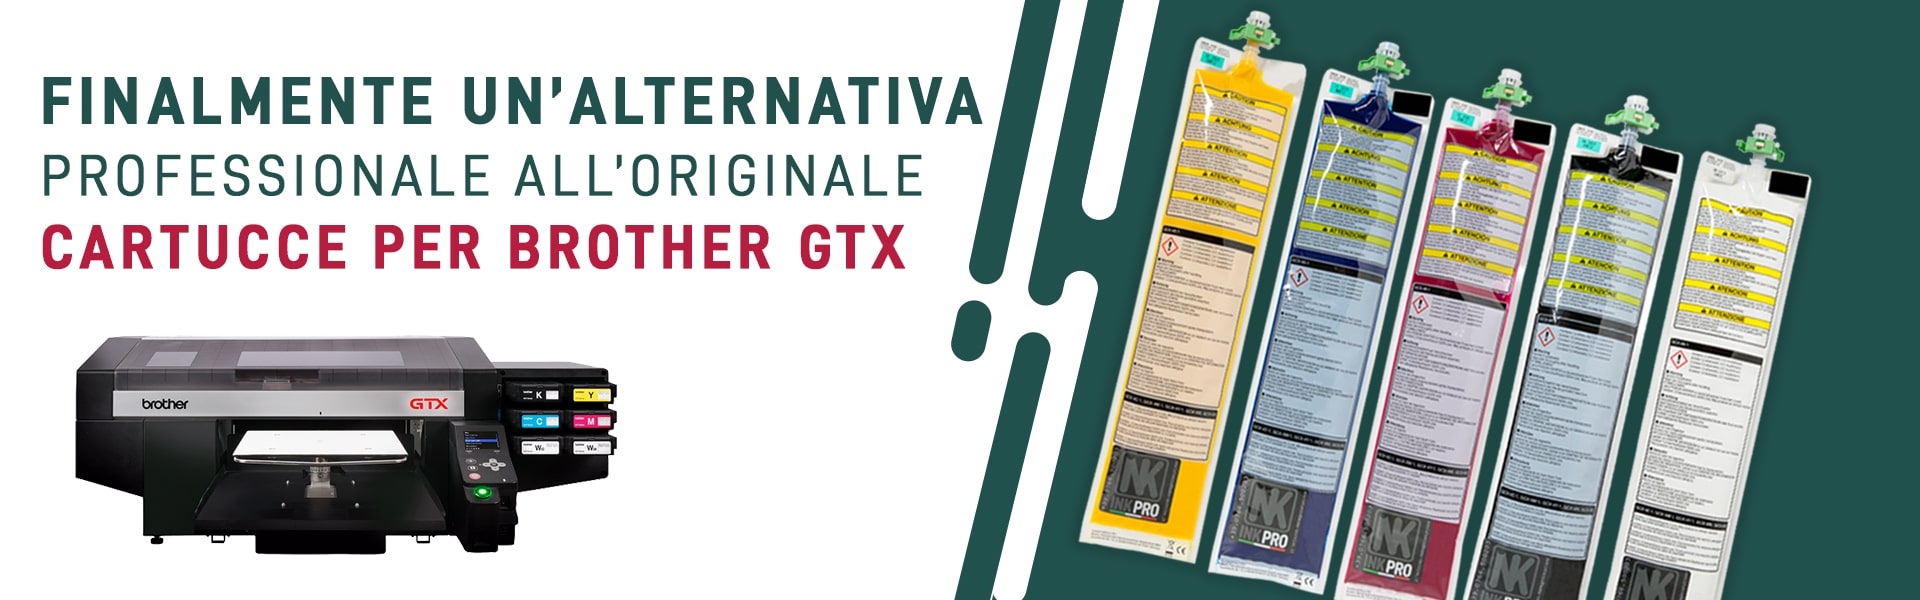 cartucce per stampante brother gtx